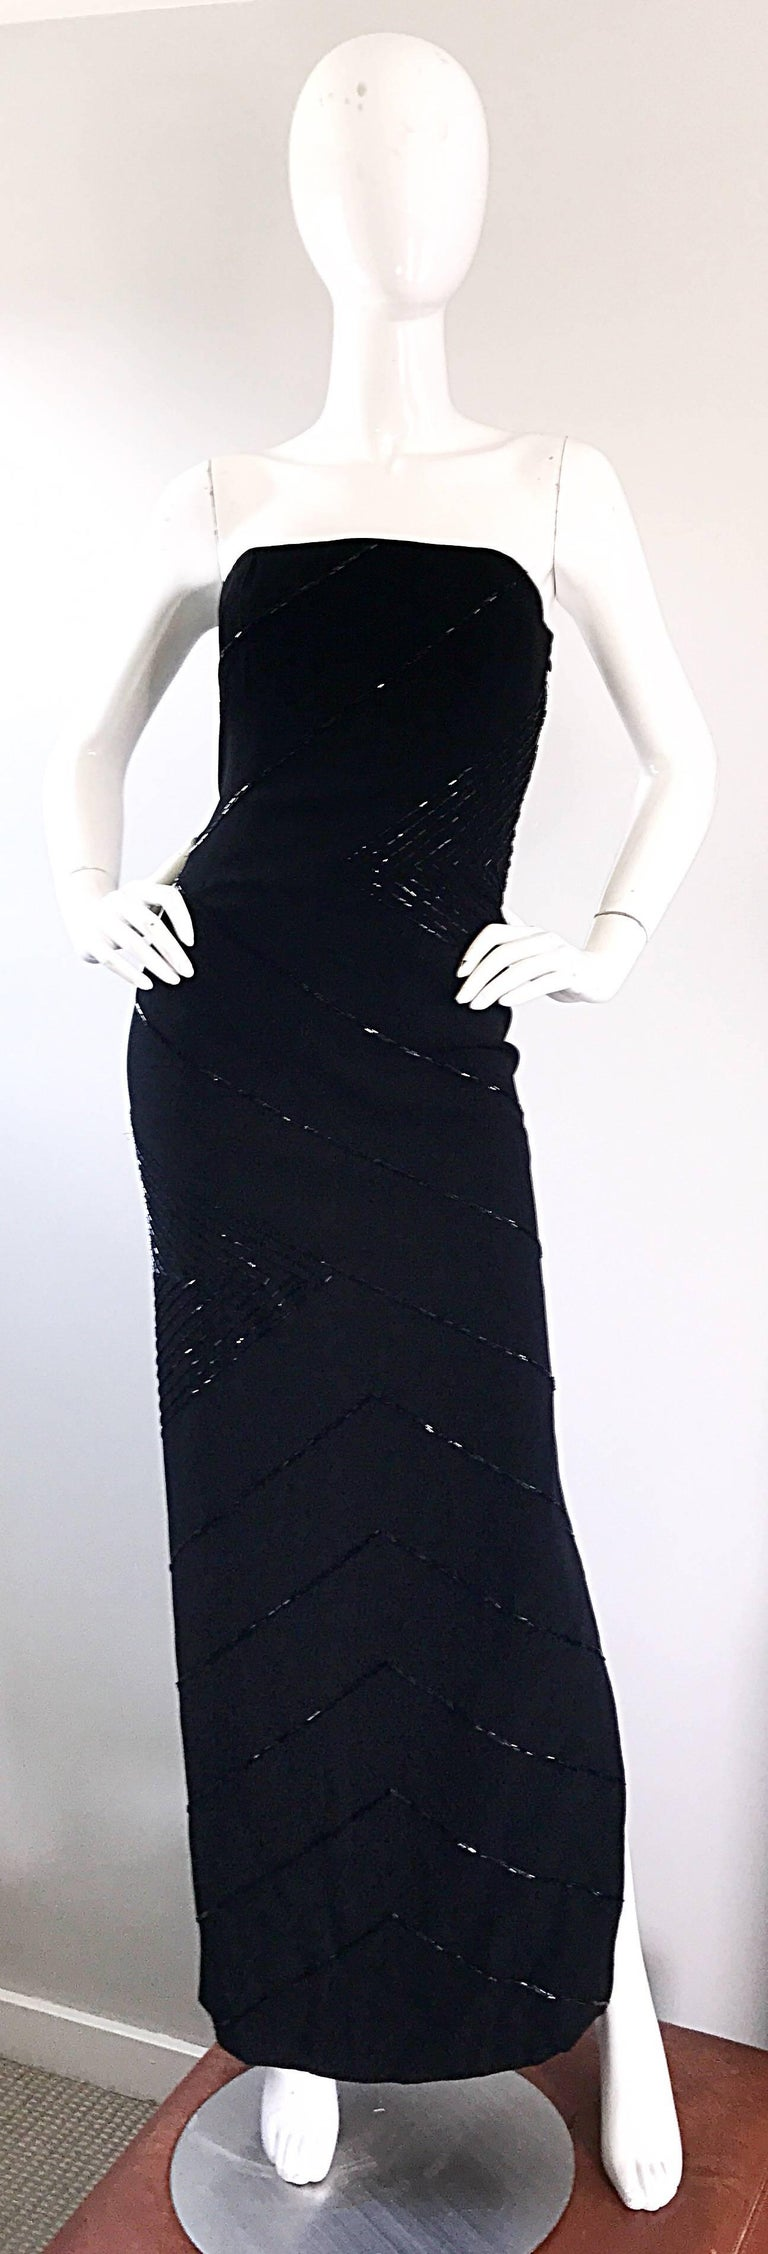 Stunning 1990s BILL BLASS black crepe beaded strapless evening gown! Features thousands of slimming black beads hand-sewn throughout. Interior boned bust helps keep everything in place, along with interior waist support. Hidden zipper up the side